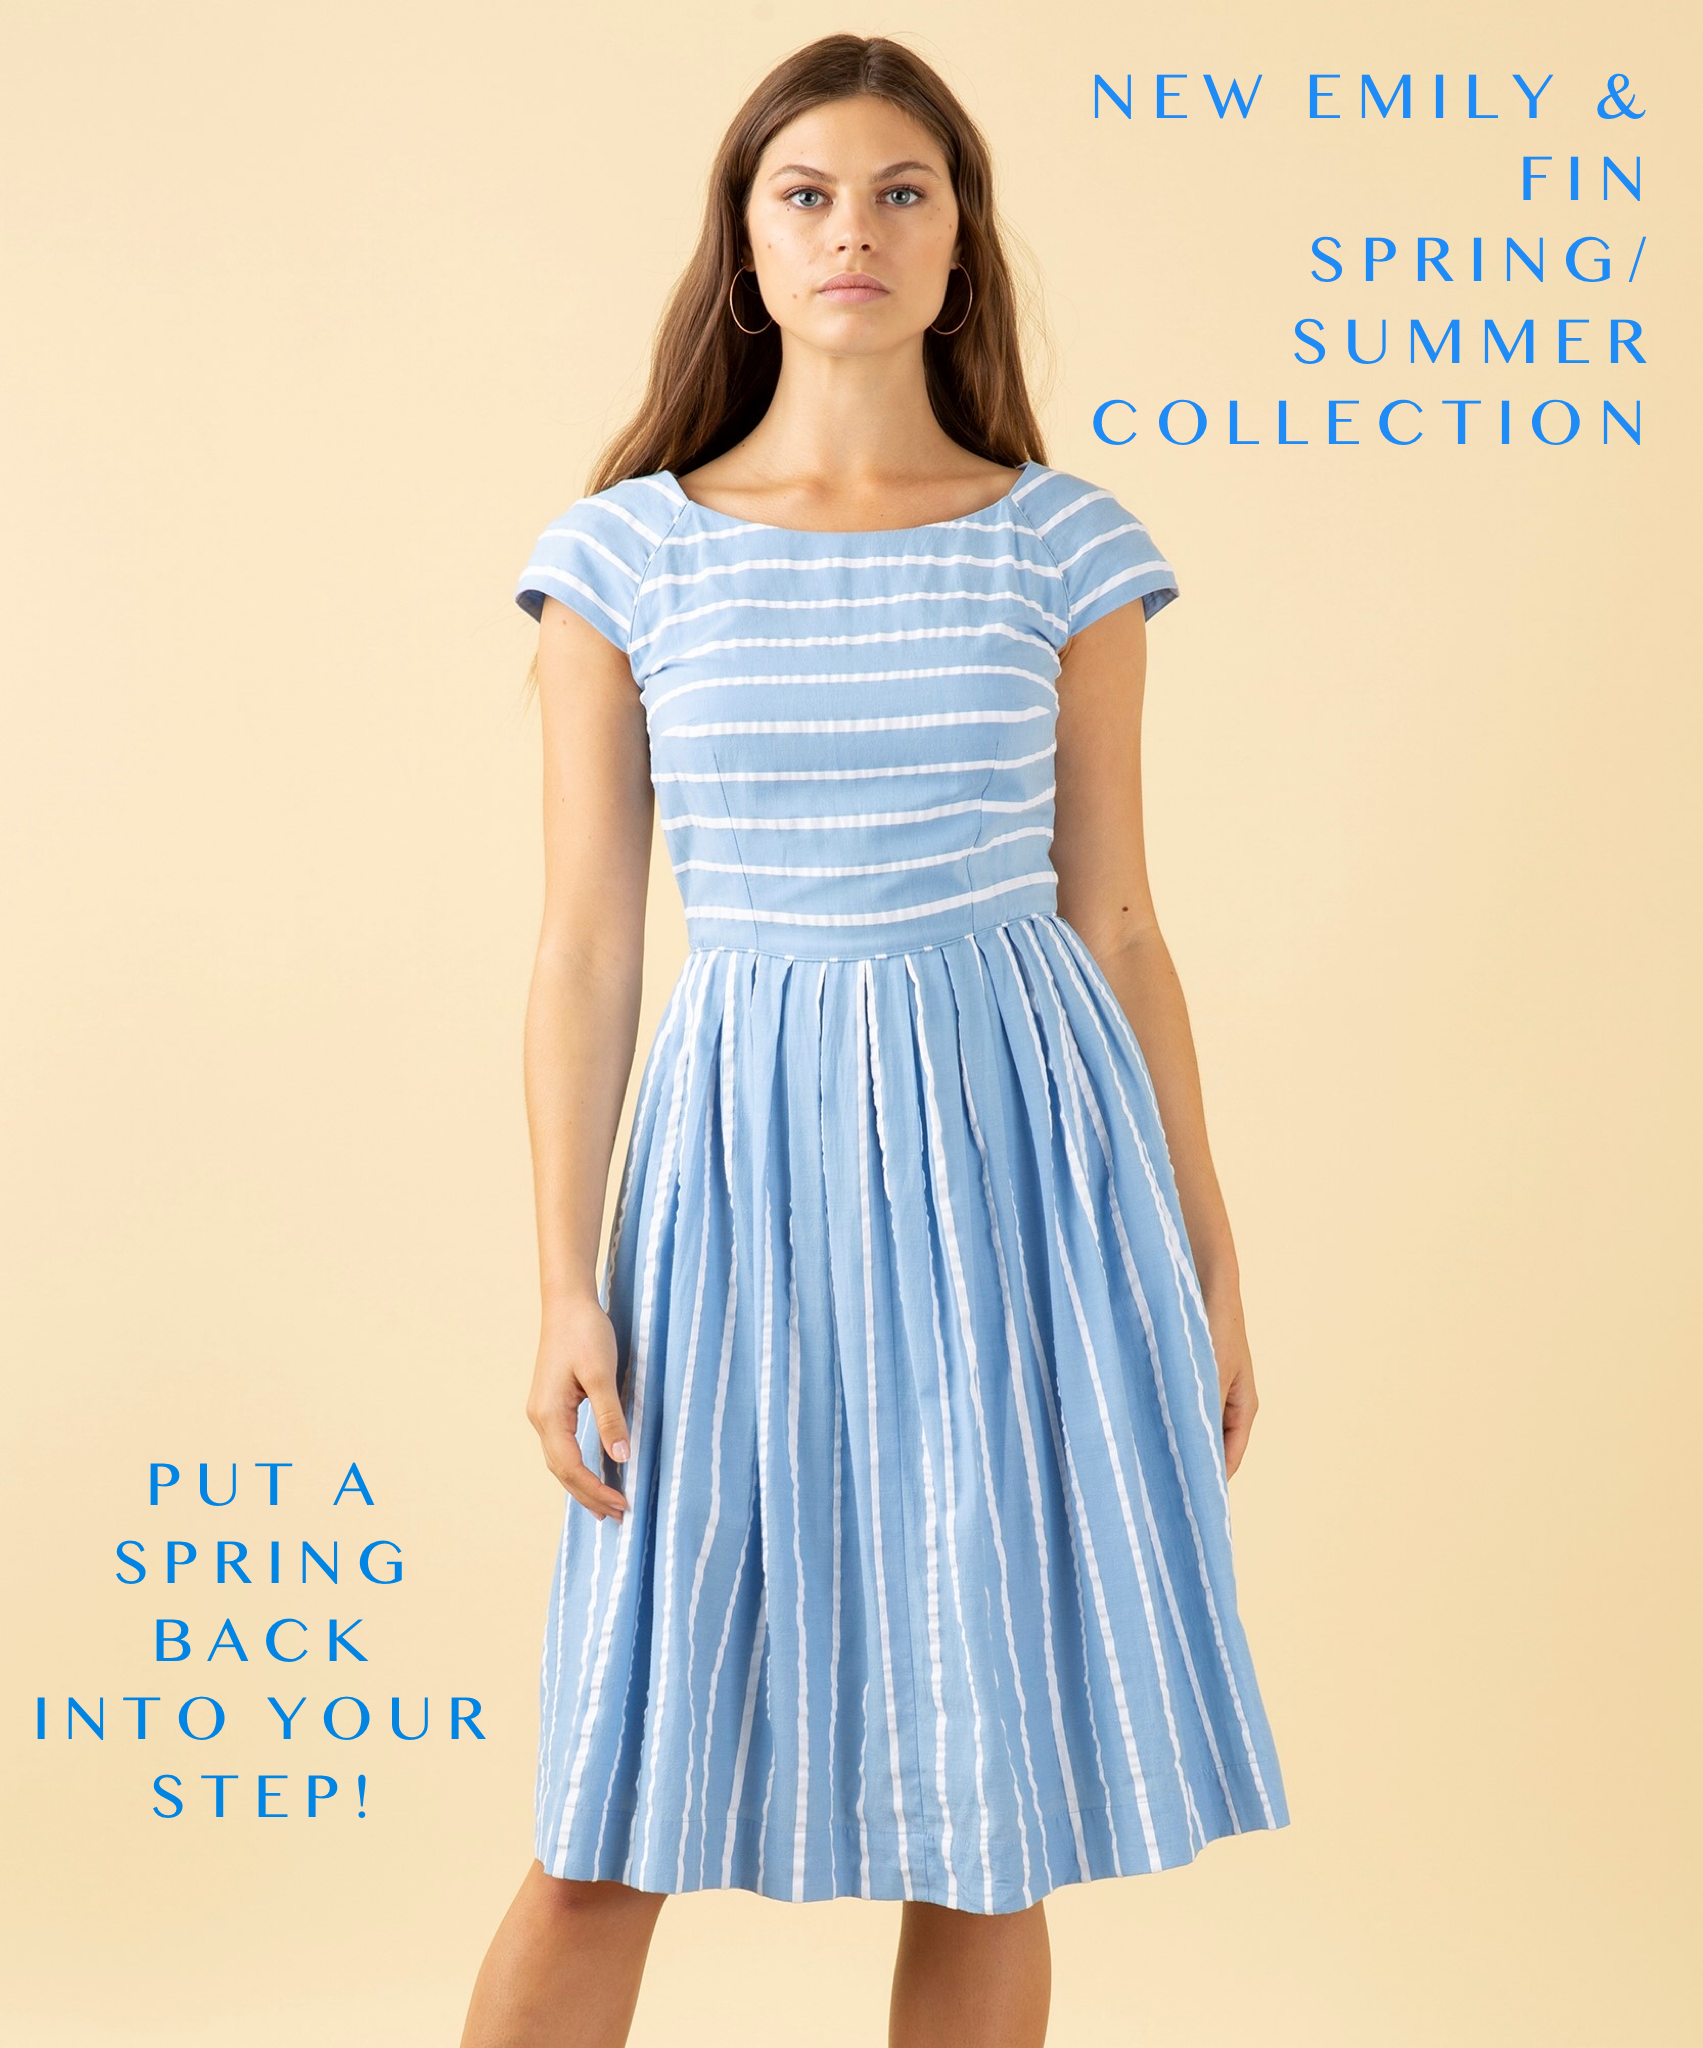 Emily & Fin Spring/Summer 2021 beautiful new collection of elegant and sophisticated timeless statement dresses and pieces. Feel amazing wearing them whether at a special occasion or simply walking on the beach.